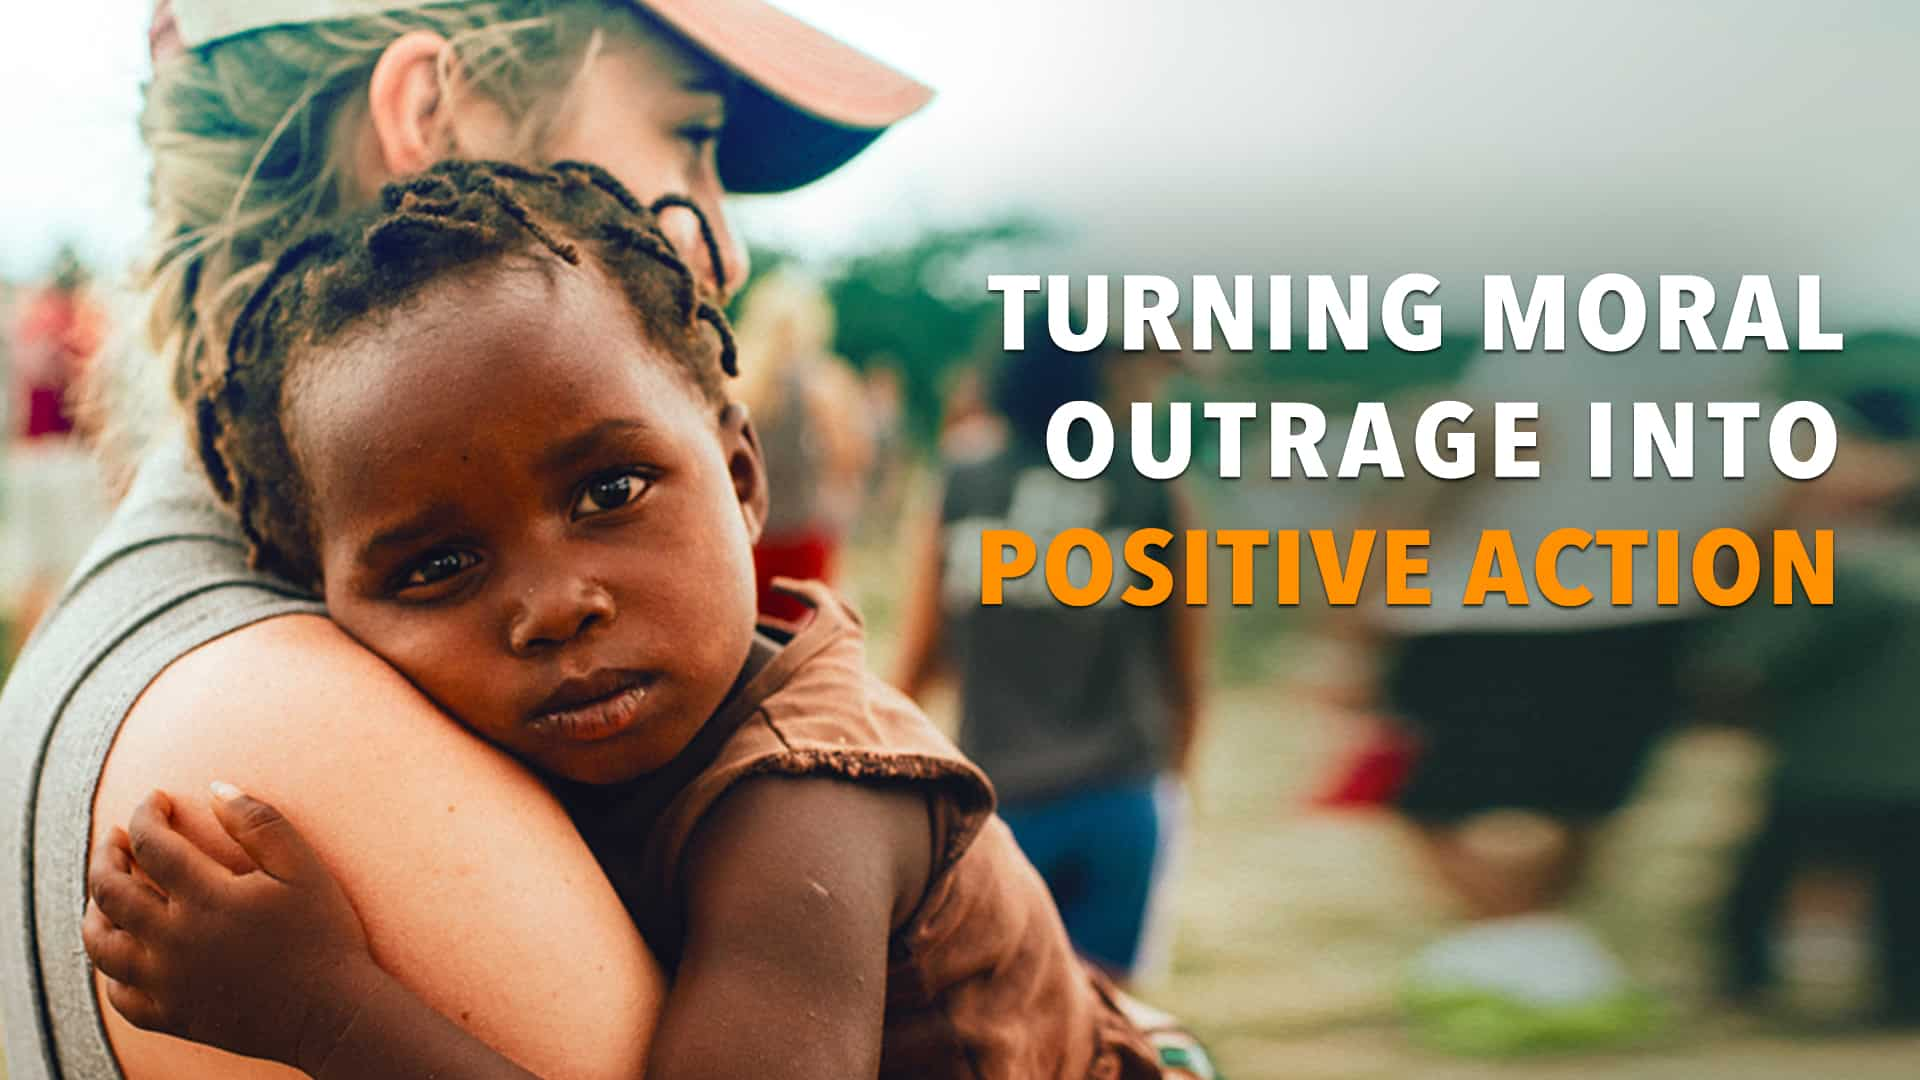 Turning Moral Outrage into Positive Action